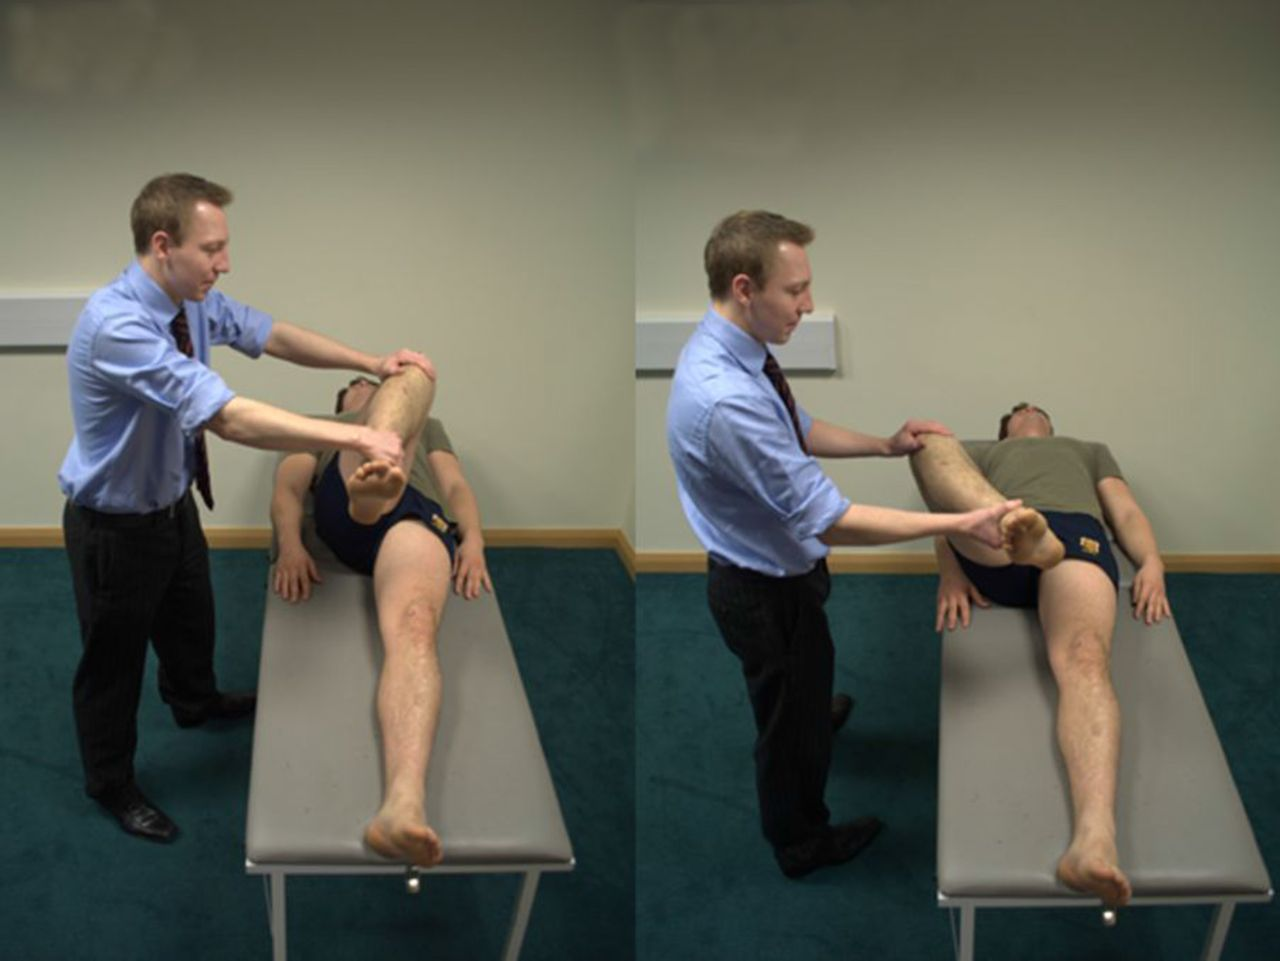 「Flexion, Adduction, Internal Rotation (FADIR) Impingement Test」の画像検索結果